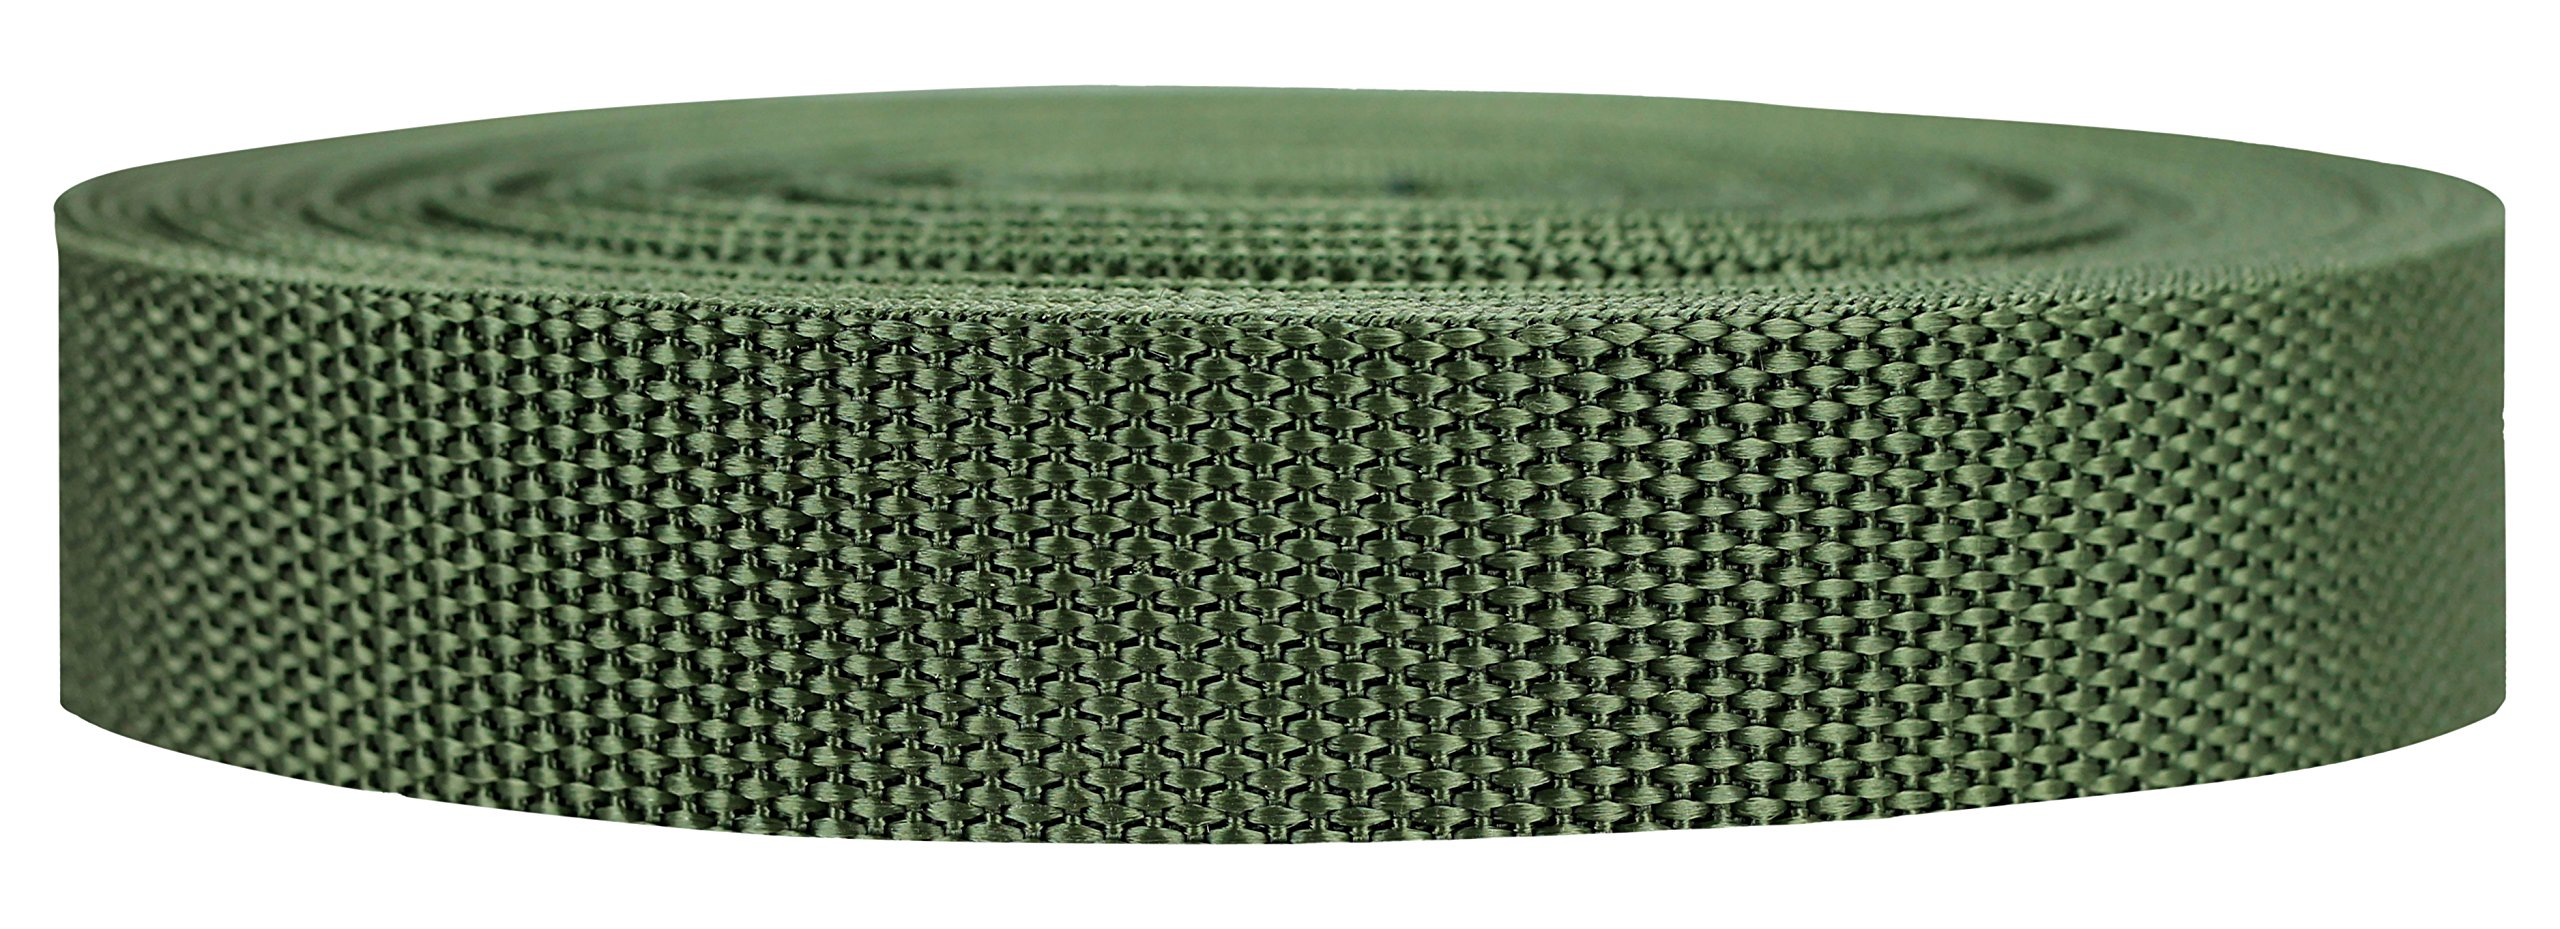 Strapworks Heavyweight Polypropylene Webbing - Heavy Duty Poly Strapping for Outdoor DIY Gear Repair, 1 Inch x 10 Yards - Olive Drab